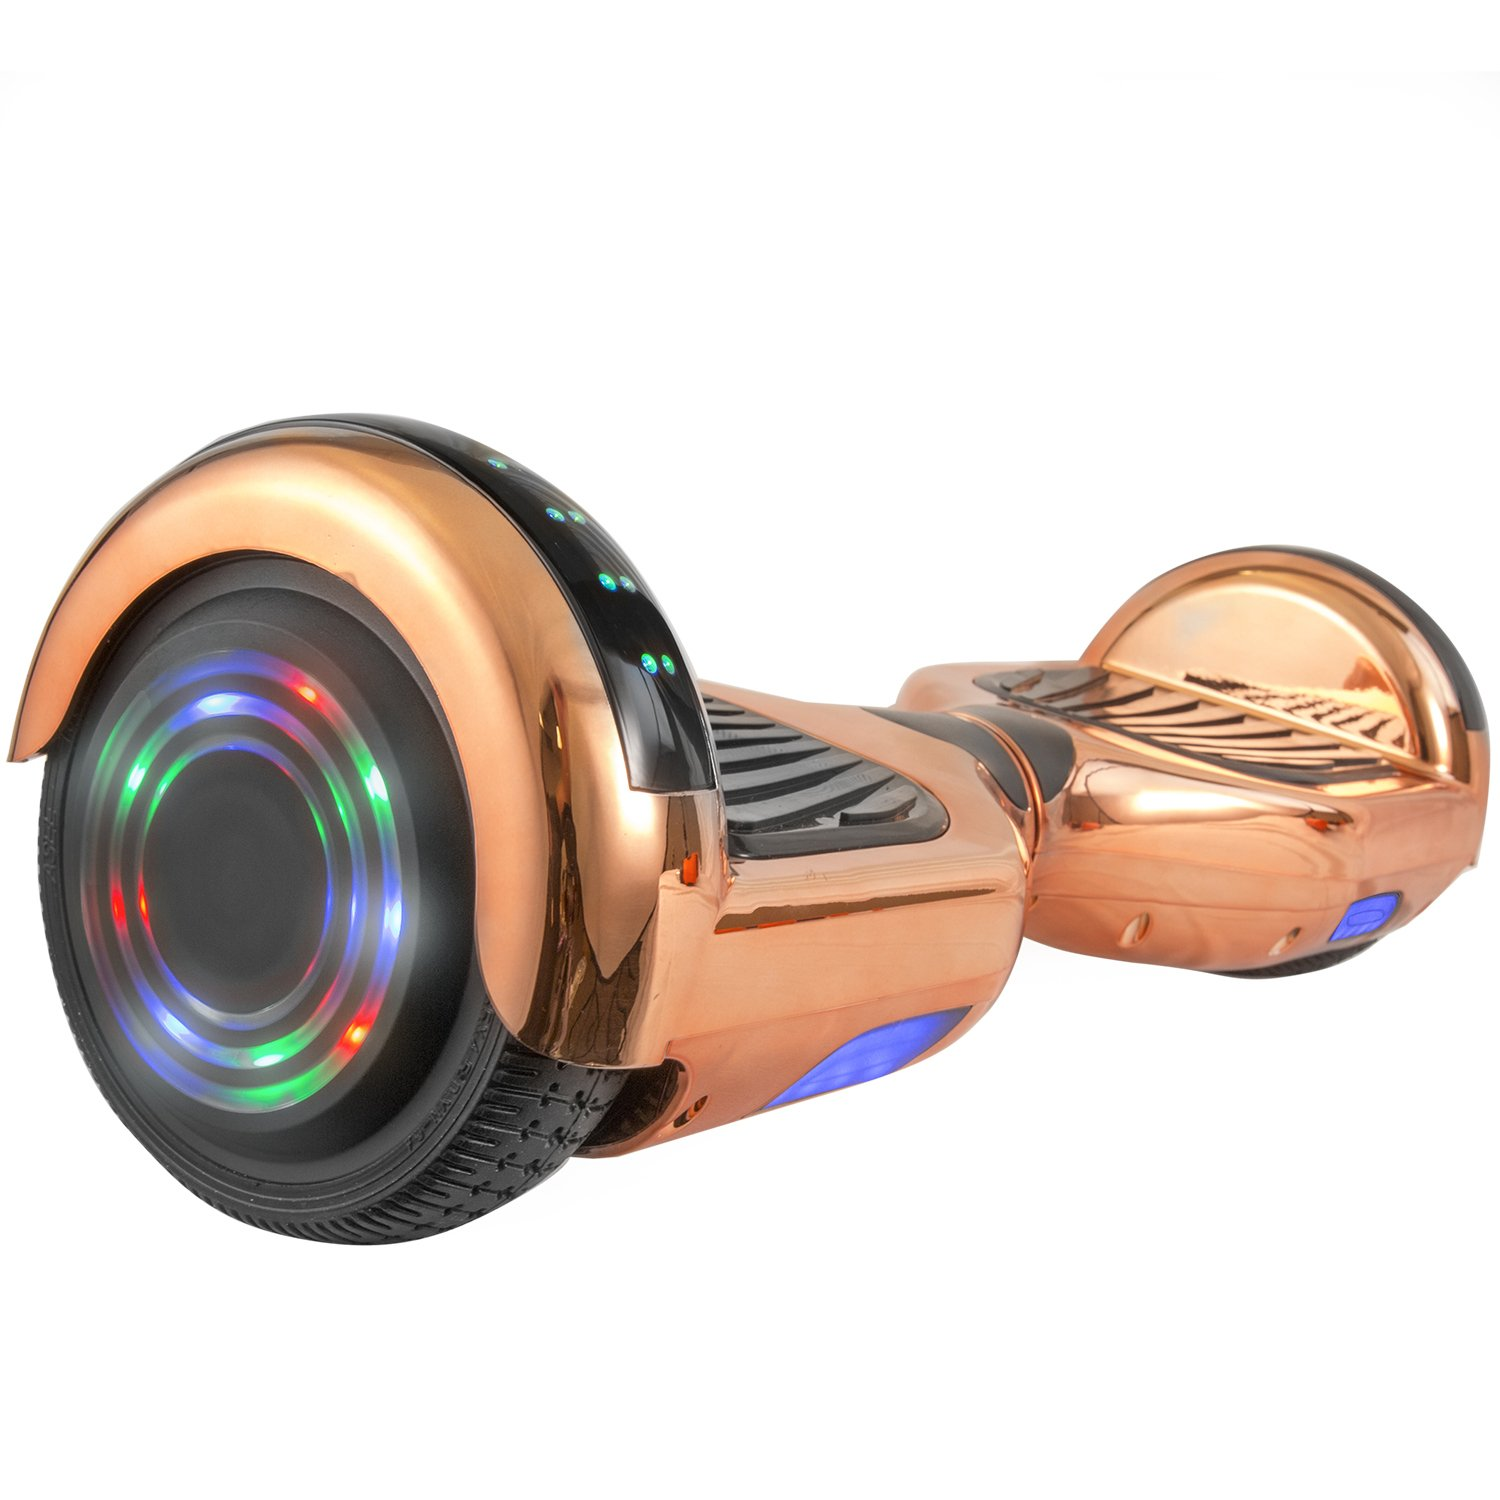 Levit8ion ION 6.5'' Hoverboard -Self Balancing Scooter 2 Wheel Electric Scooter - UL Certified 2272 Bluetooth W/Speaker, LED Wheels And LED Lights (Chrome Rose Gold) by Levit8ion